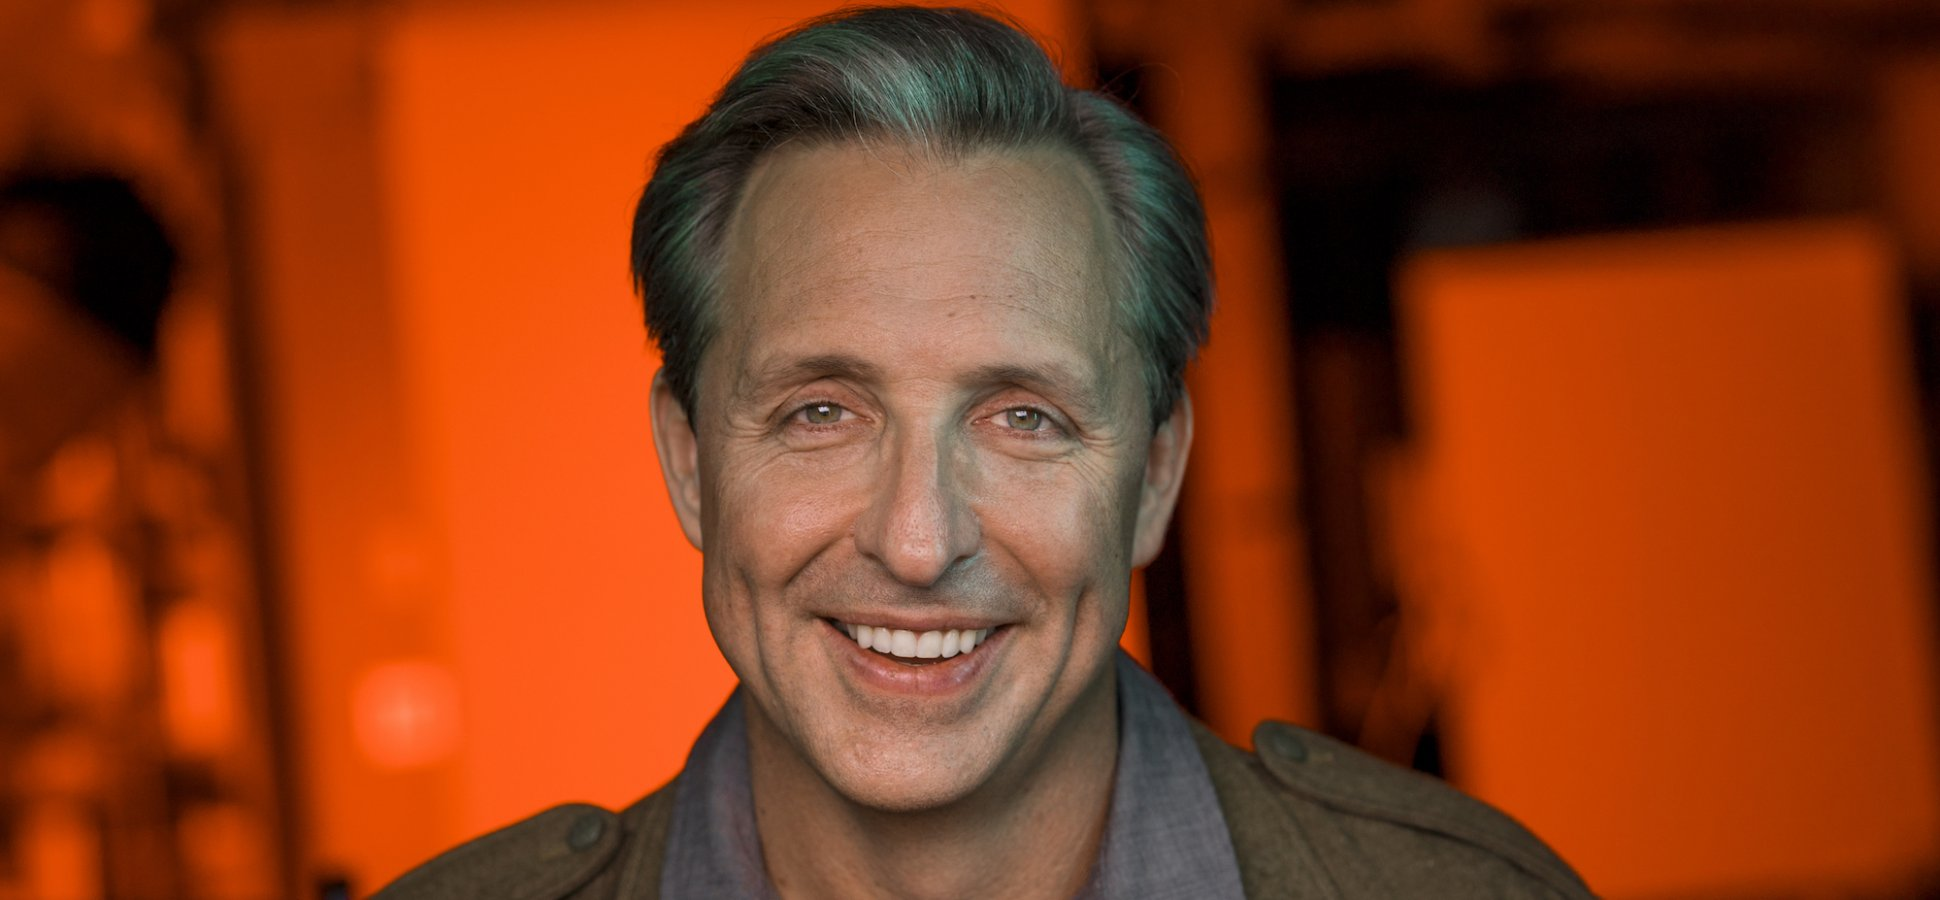 Want to Be A Game Changer? Dave Asprey Knows You Can